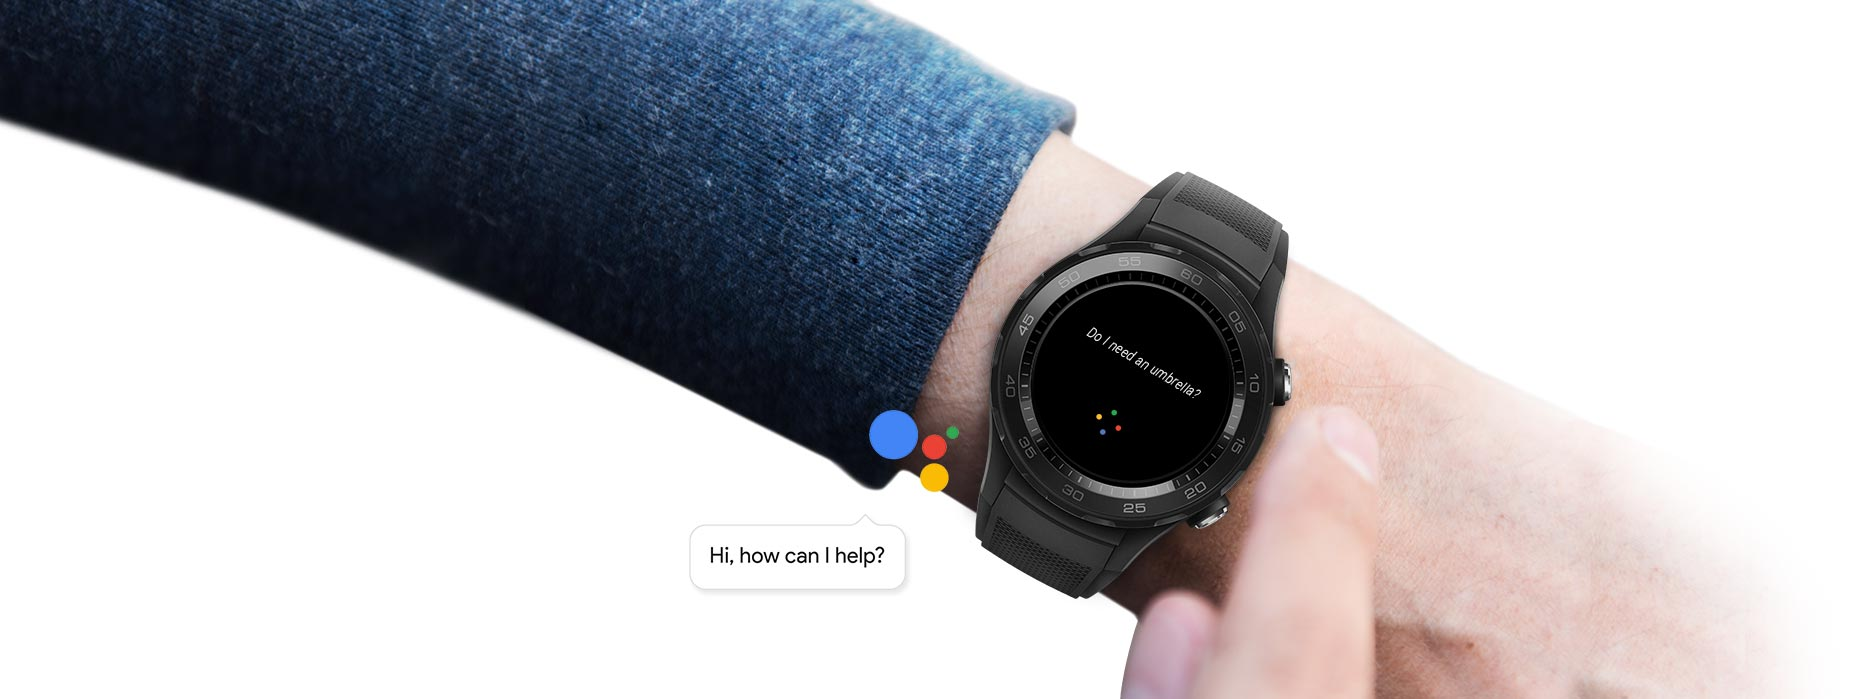 Huawei_watch_overview_20